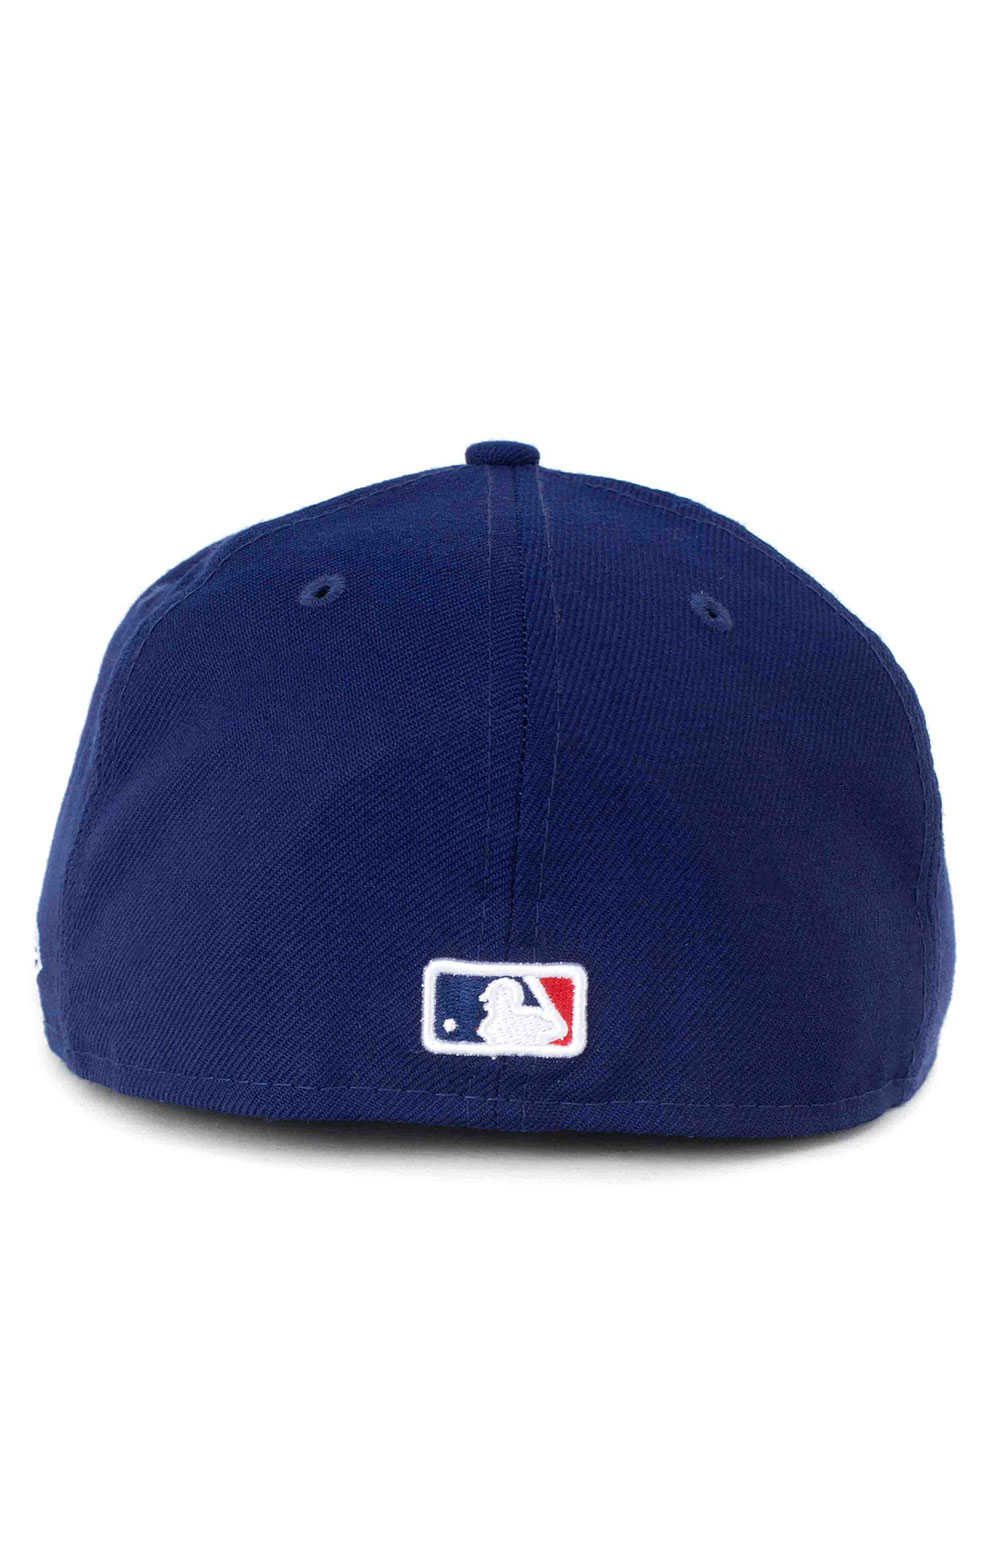 LA Dodgers City Nicknames 59Fifty Fitted Hat - Royal Blue  3